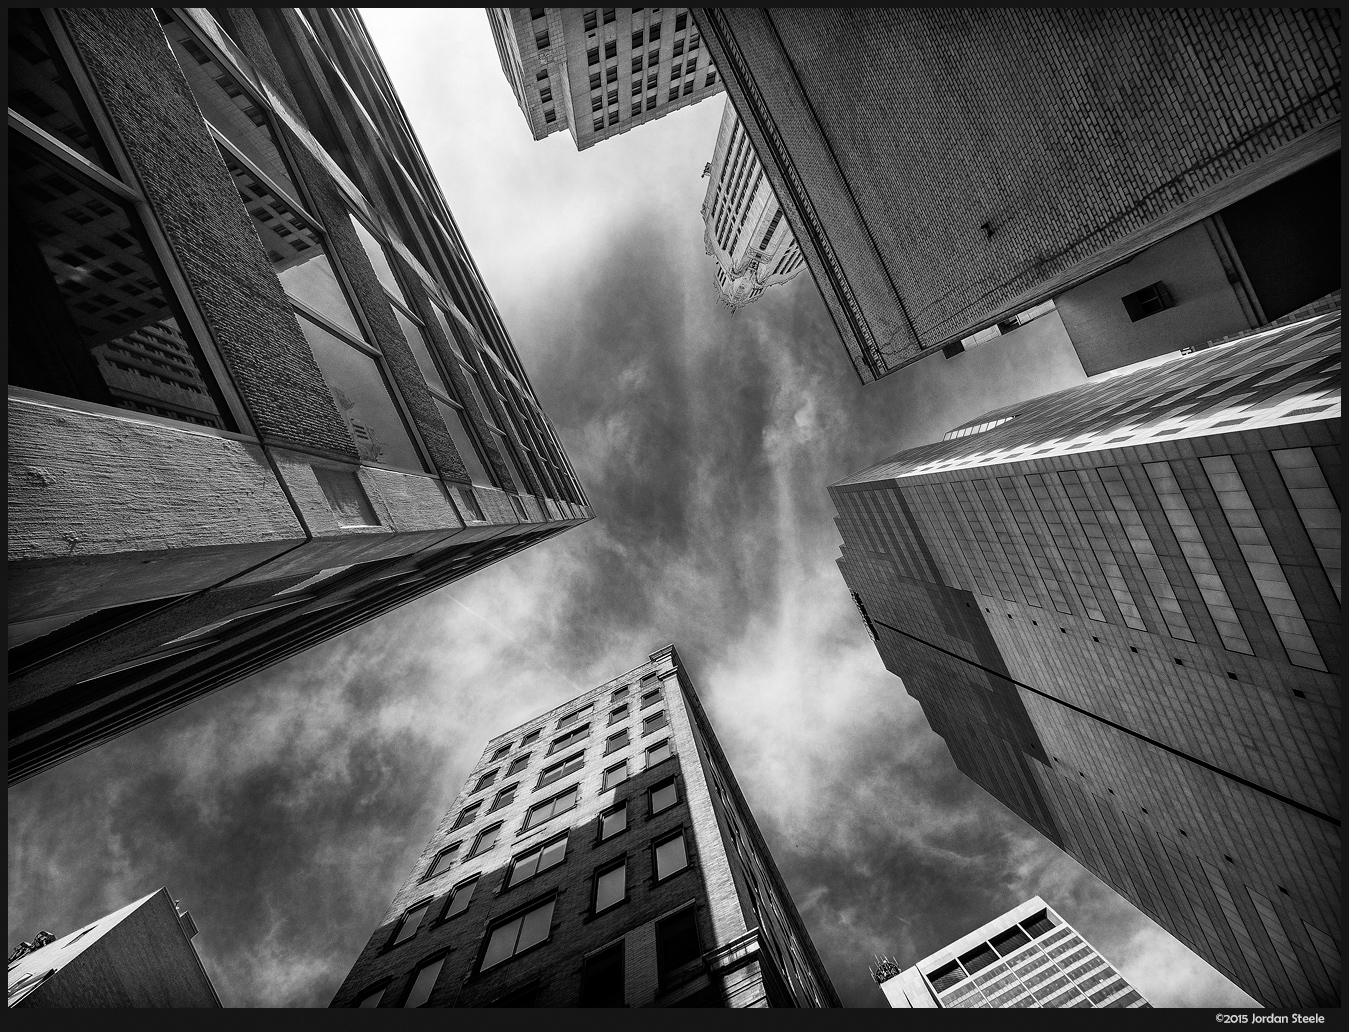 City Sky - Olympus OM-D E-M5 with Olympus 7-14mm f/2.8 PRO @ 7mm, f/5.6 (flare removed in post)